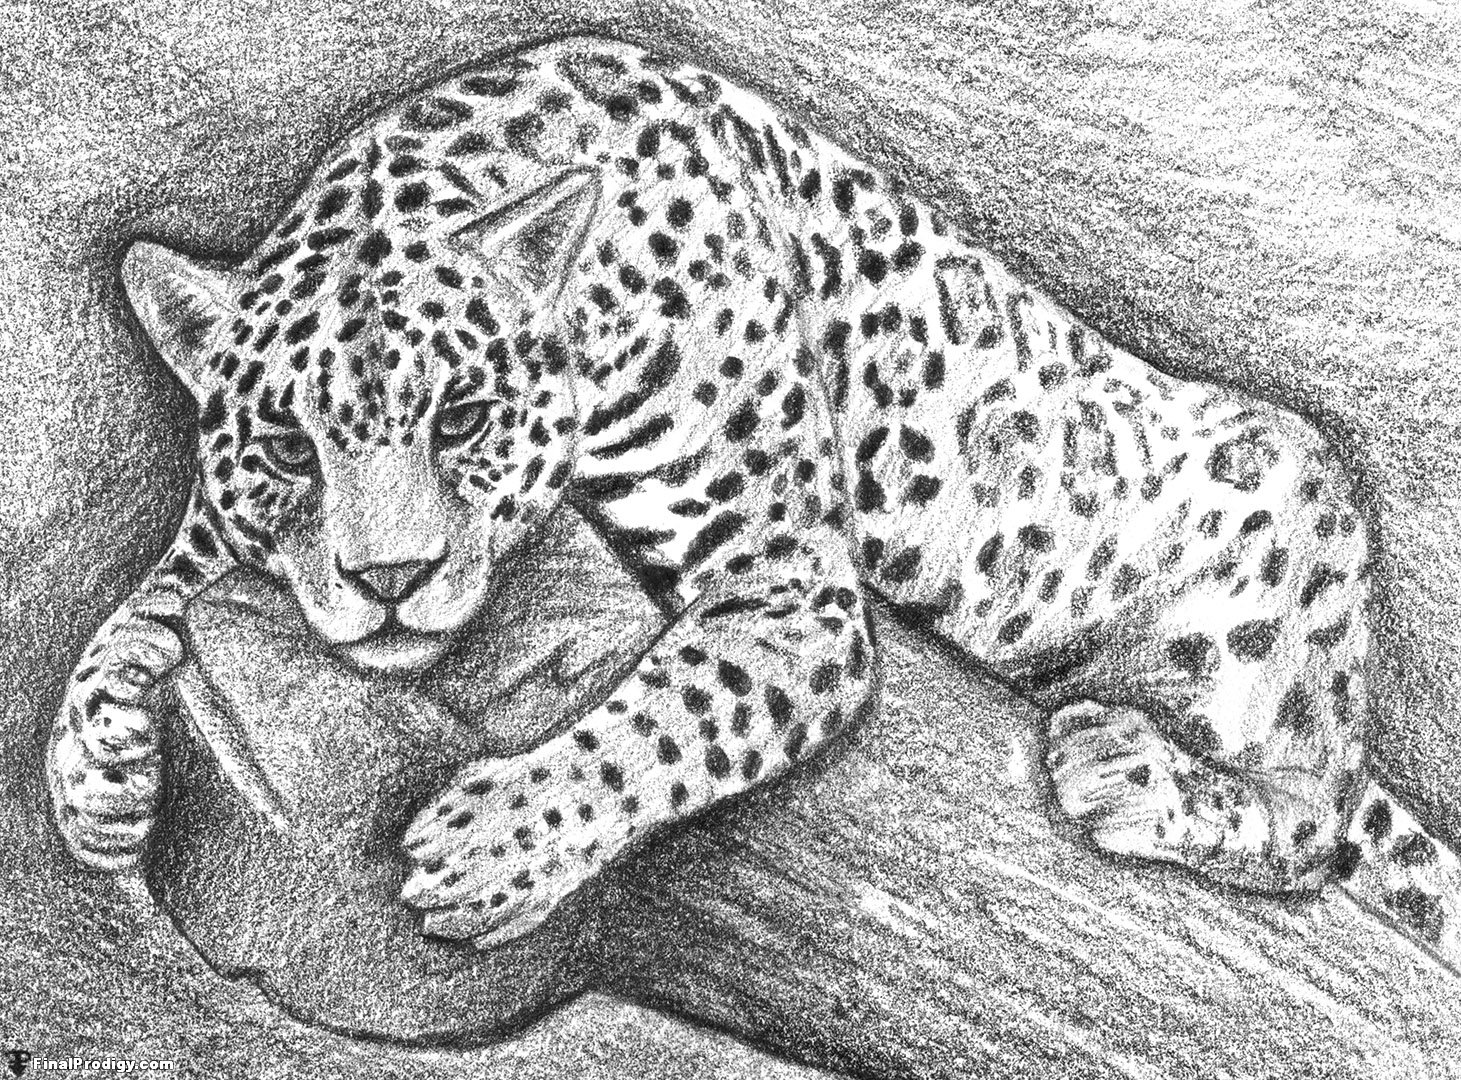 Cool Jaguar Drawings The Rest Of The Drawing How To Draw Jaguar Eyes